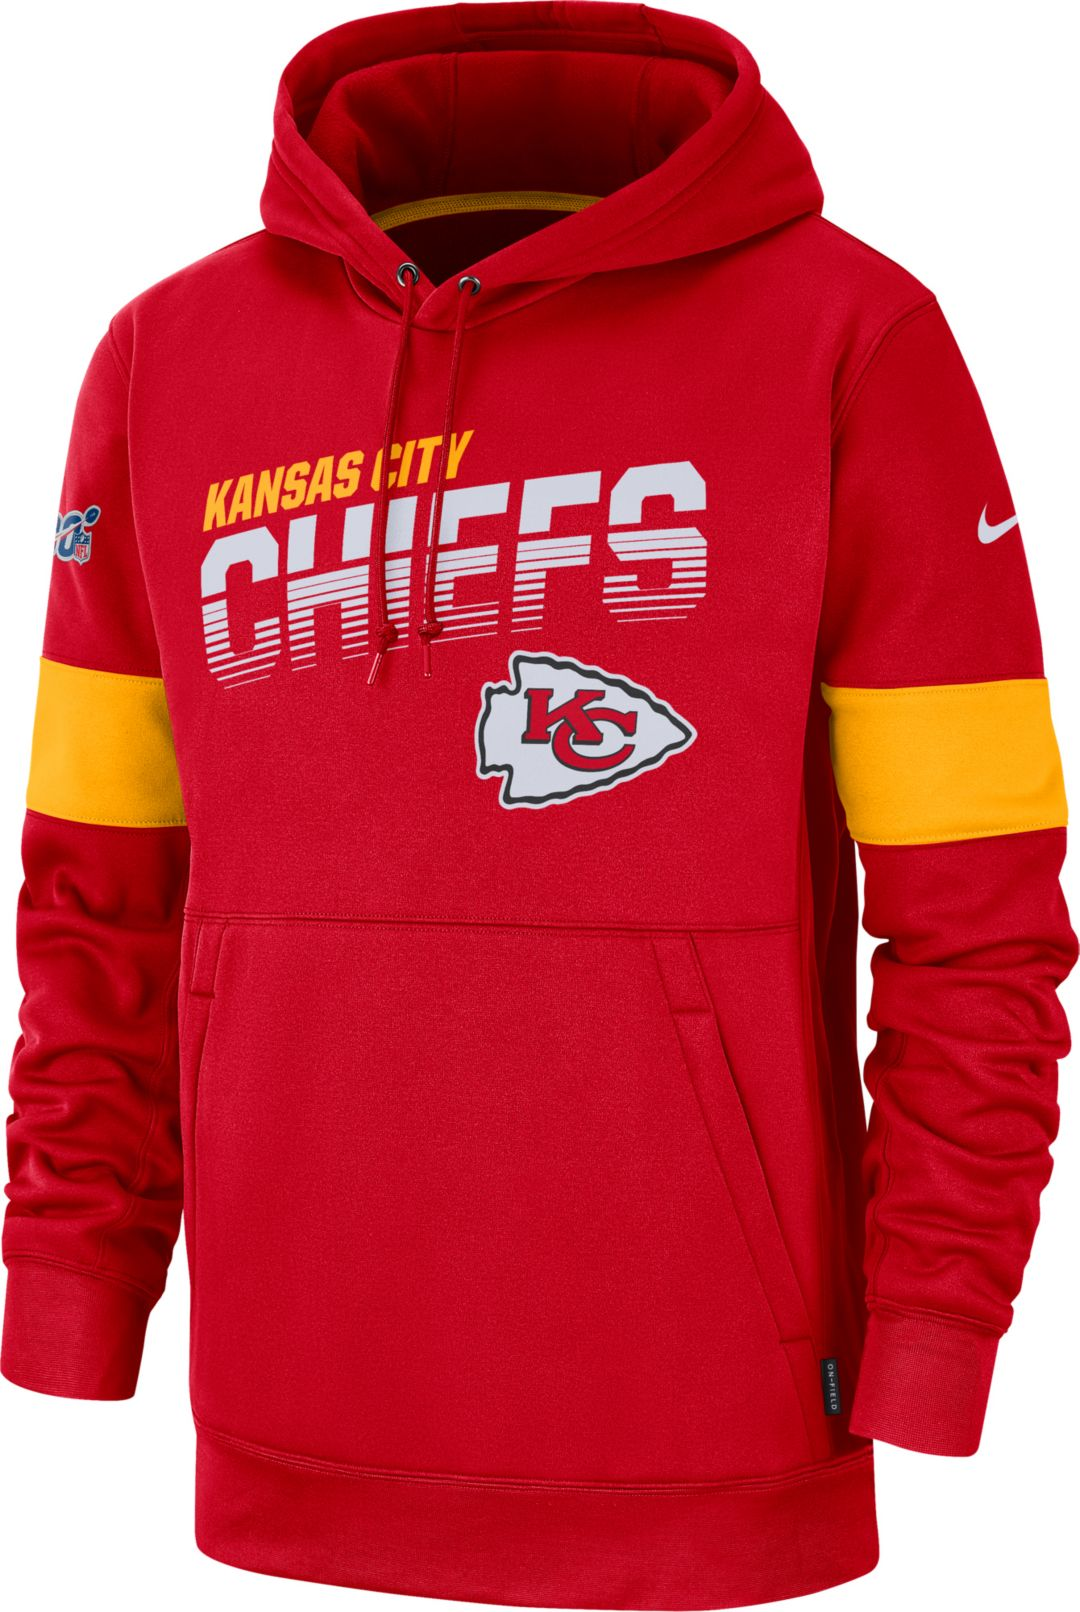 new concept f4cc3 230d2 Nike Men's Kansas City Chiefs 100th Sideline Therma-FIT Red Pullover Hoodie